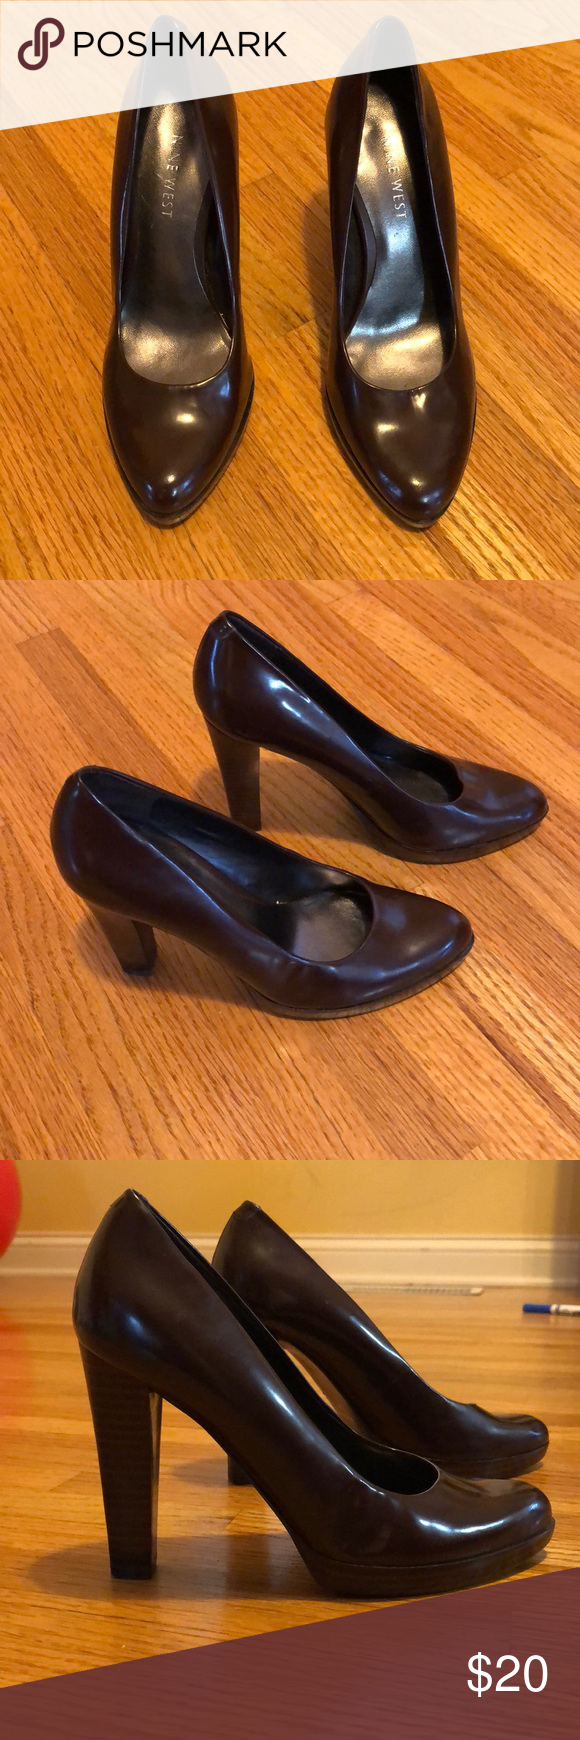 c5f278f86f3c Women s Nine West heels Women s size 5 Nine West brown shoes with 4 inch  heel.